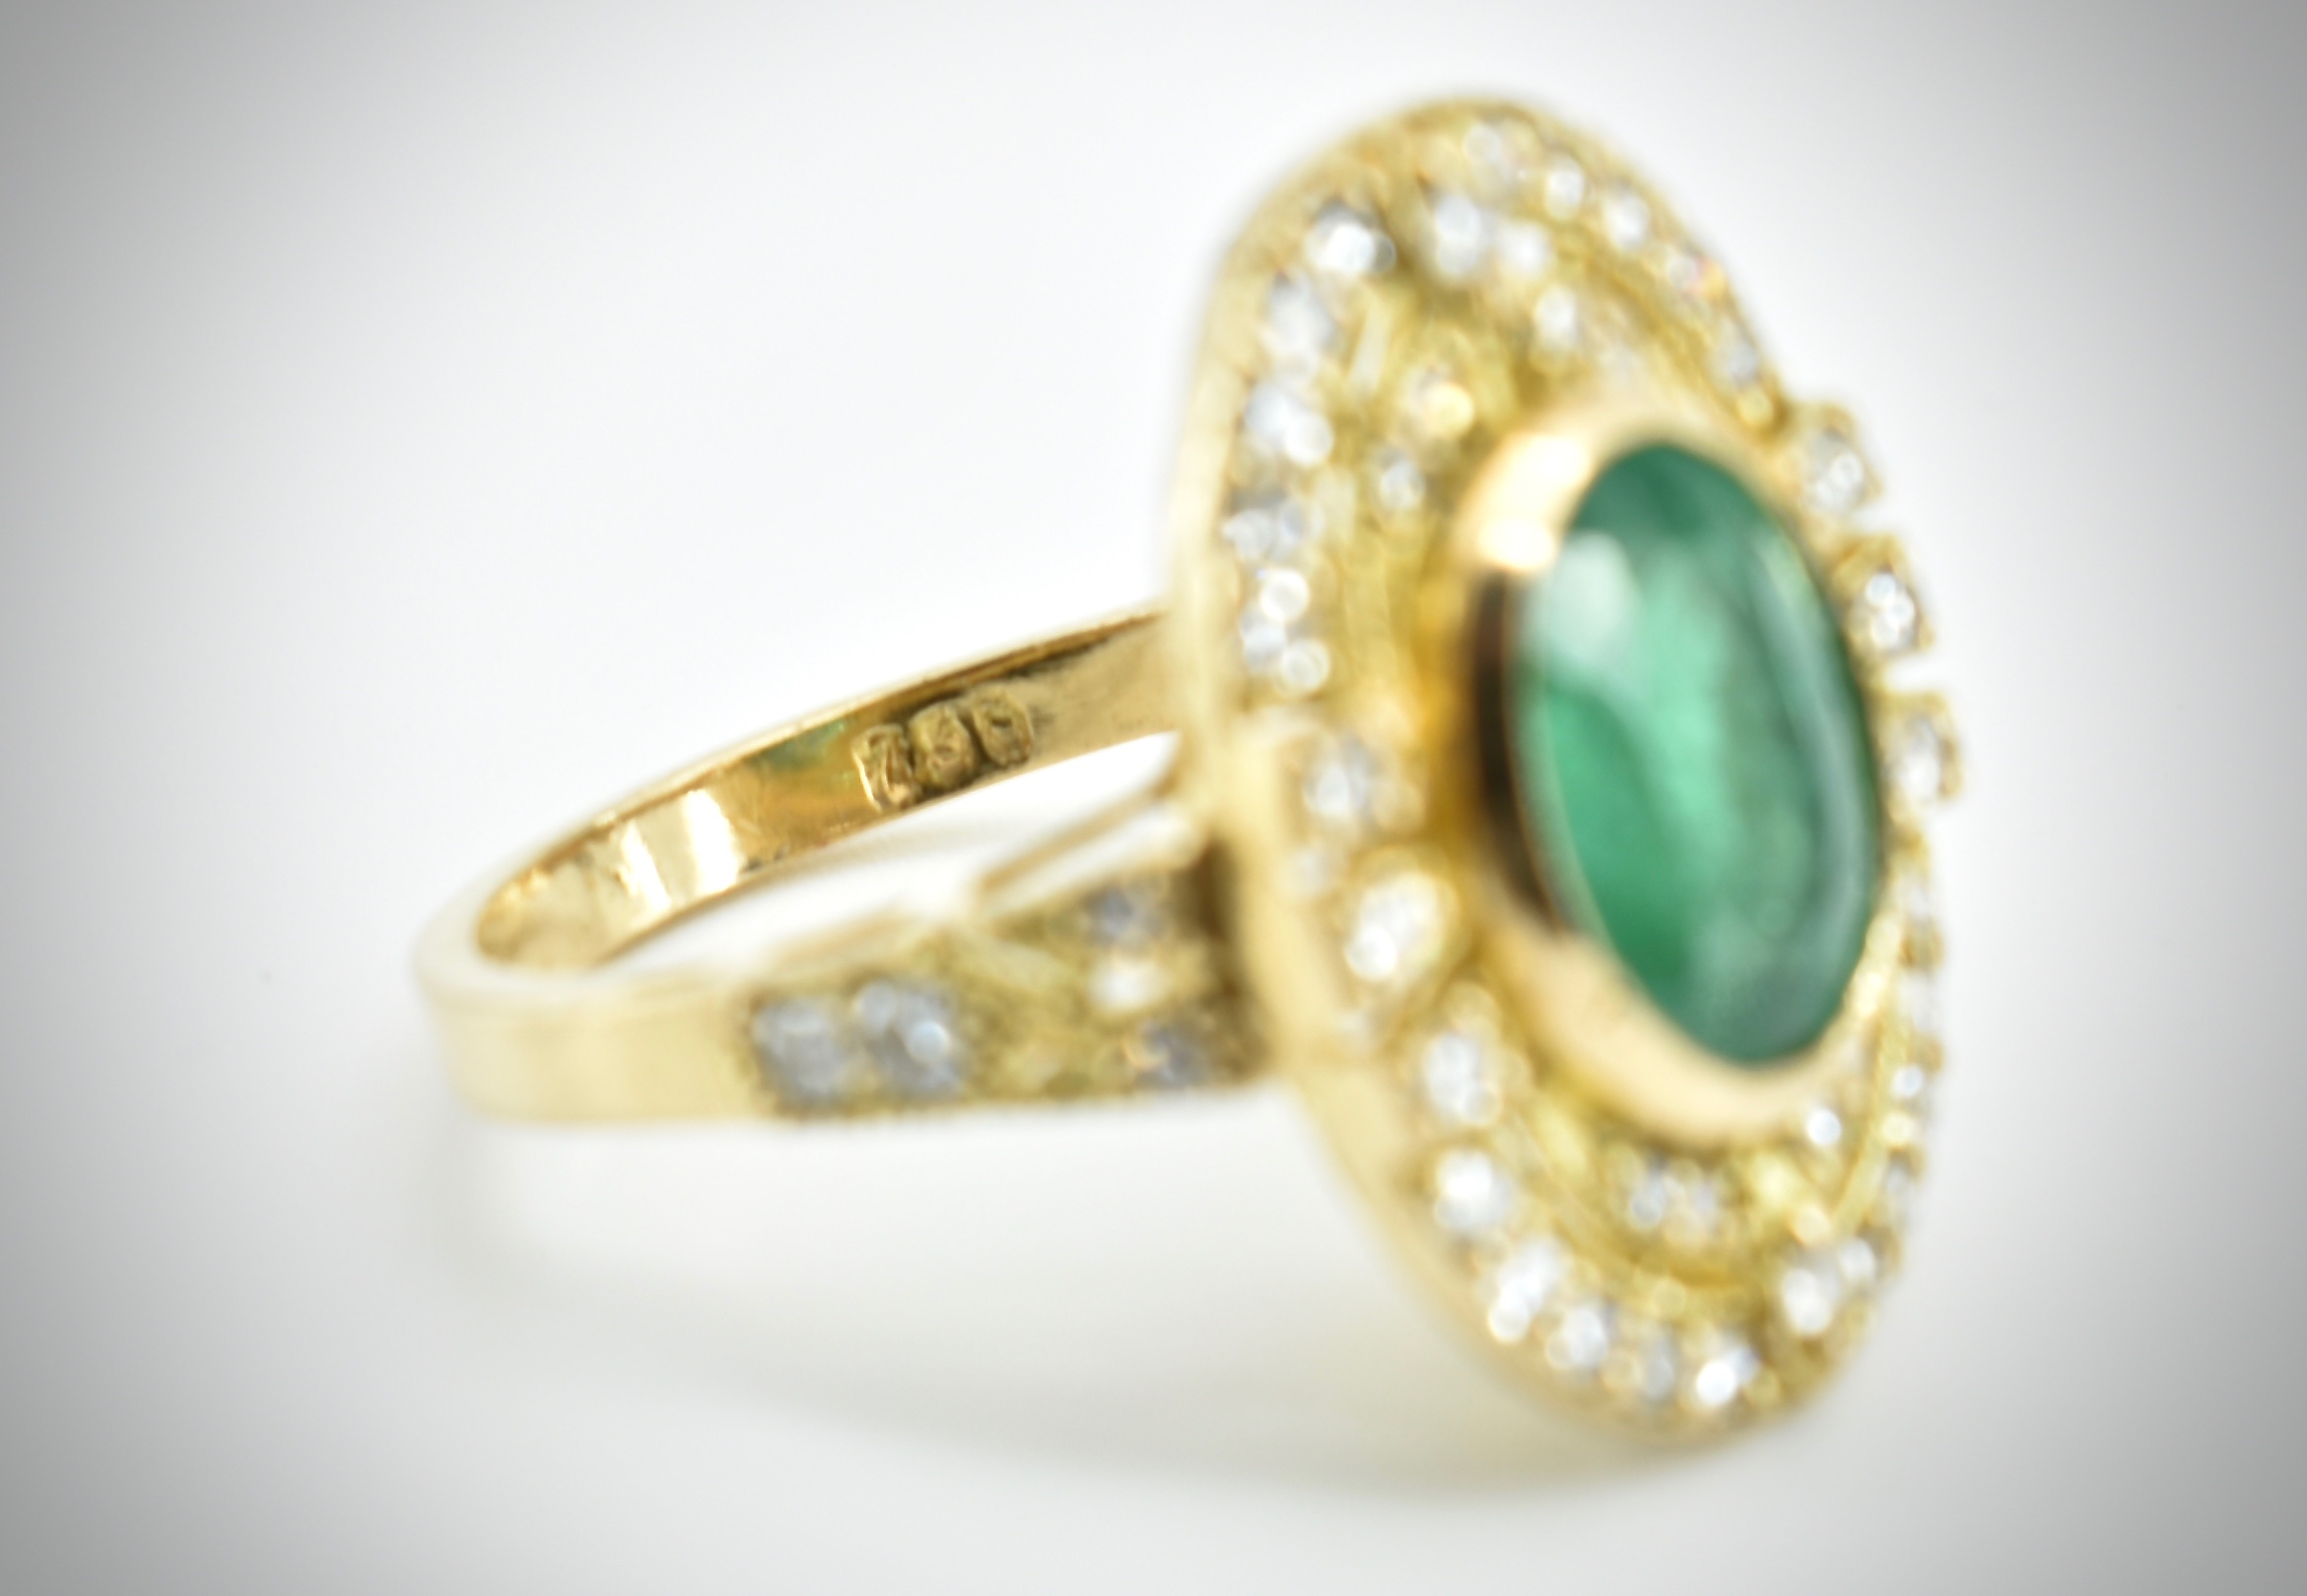 AN 18CT GOLD EMERALD & DIAMOND RING - Image 2 of 5